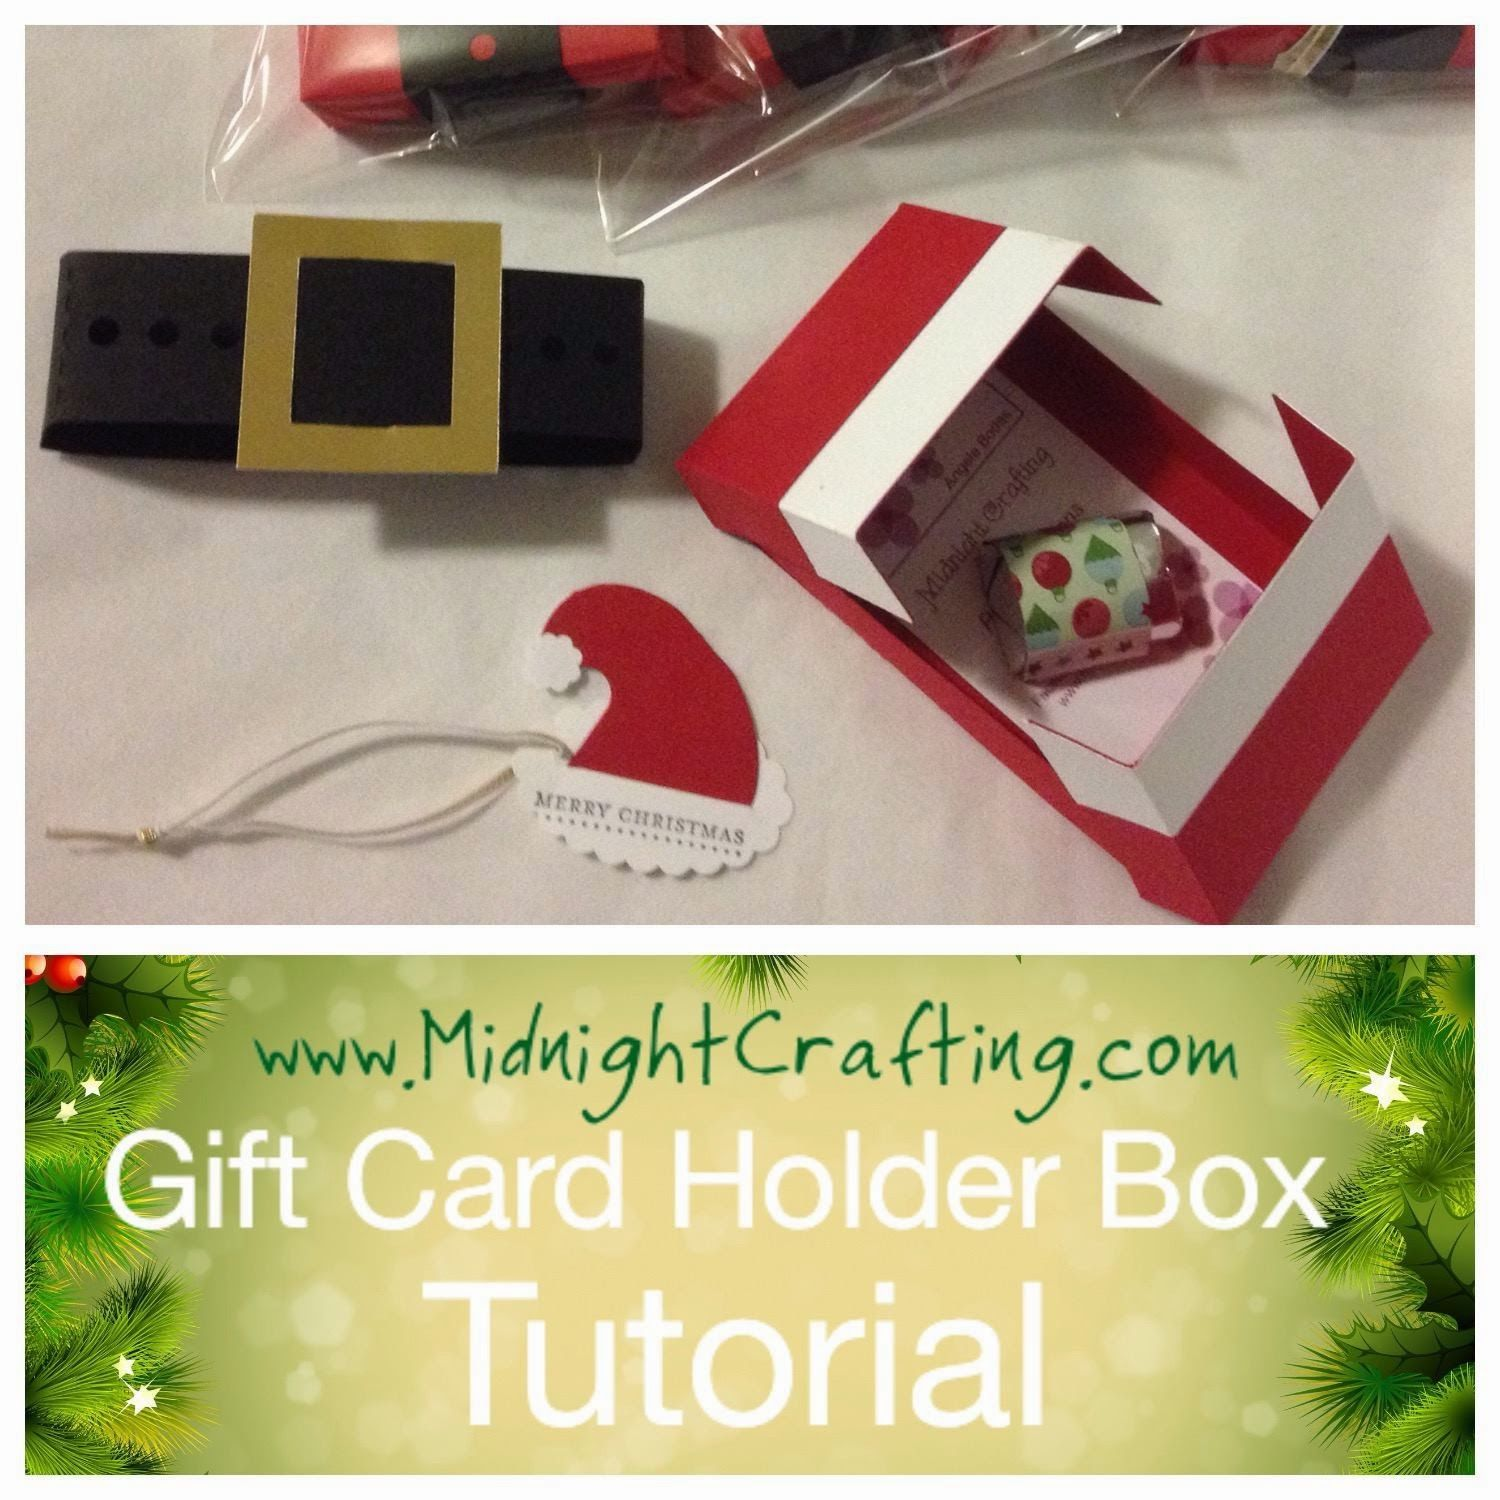 Gift Card Holder Box Tutorial Giftable Pinterest Gifts Gift